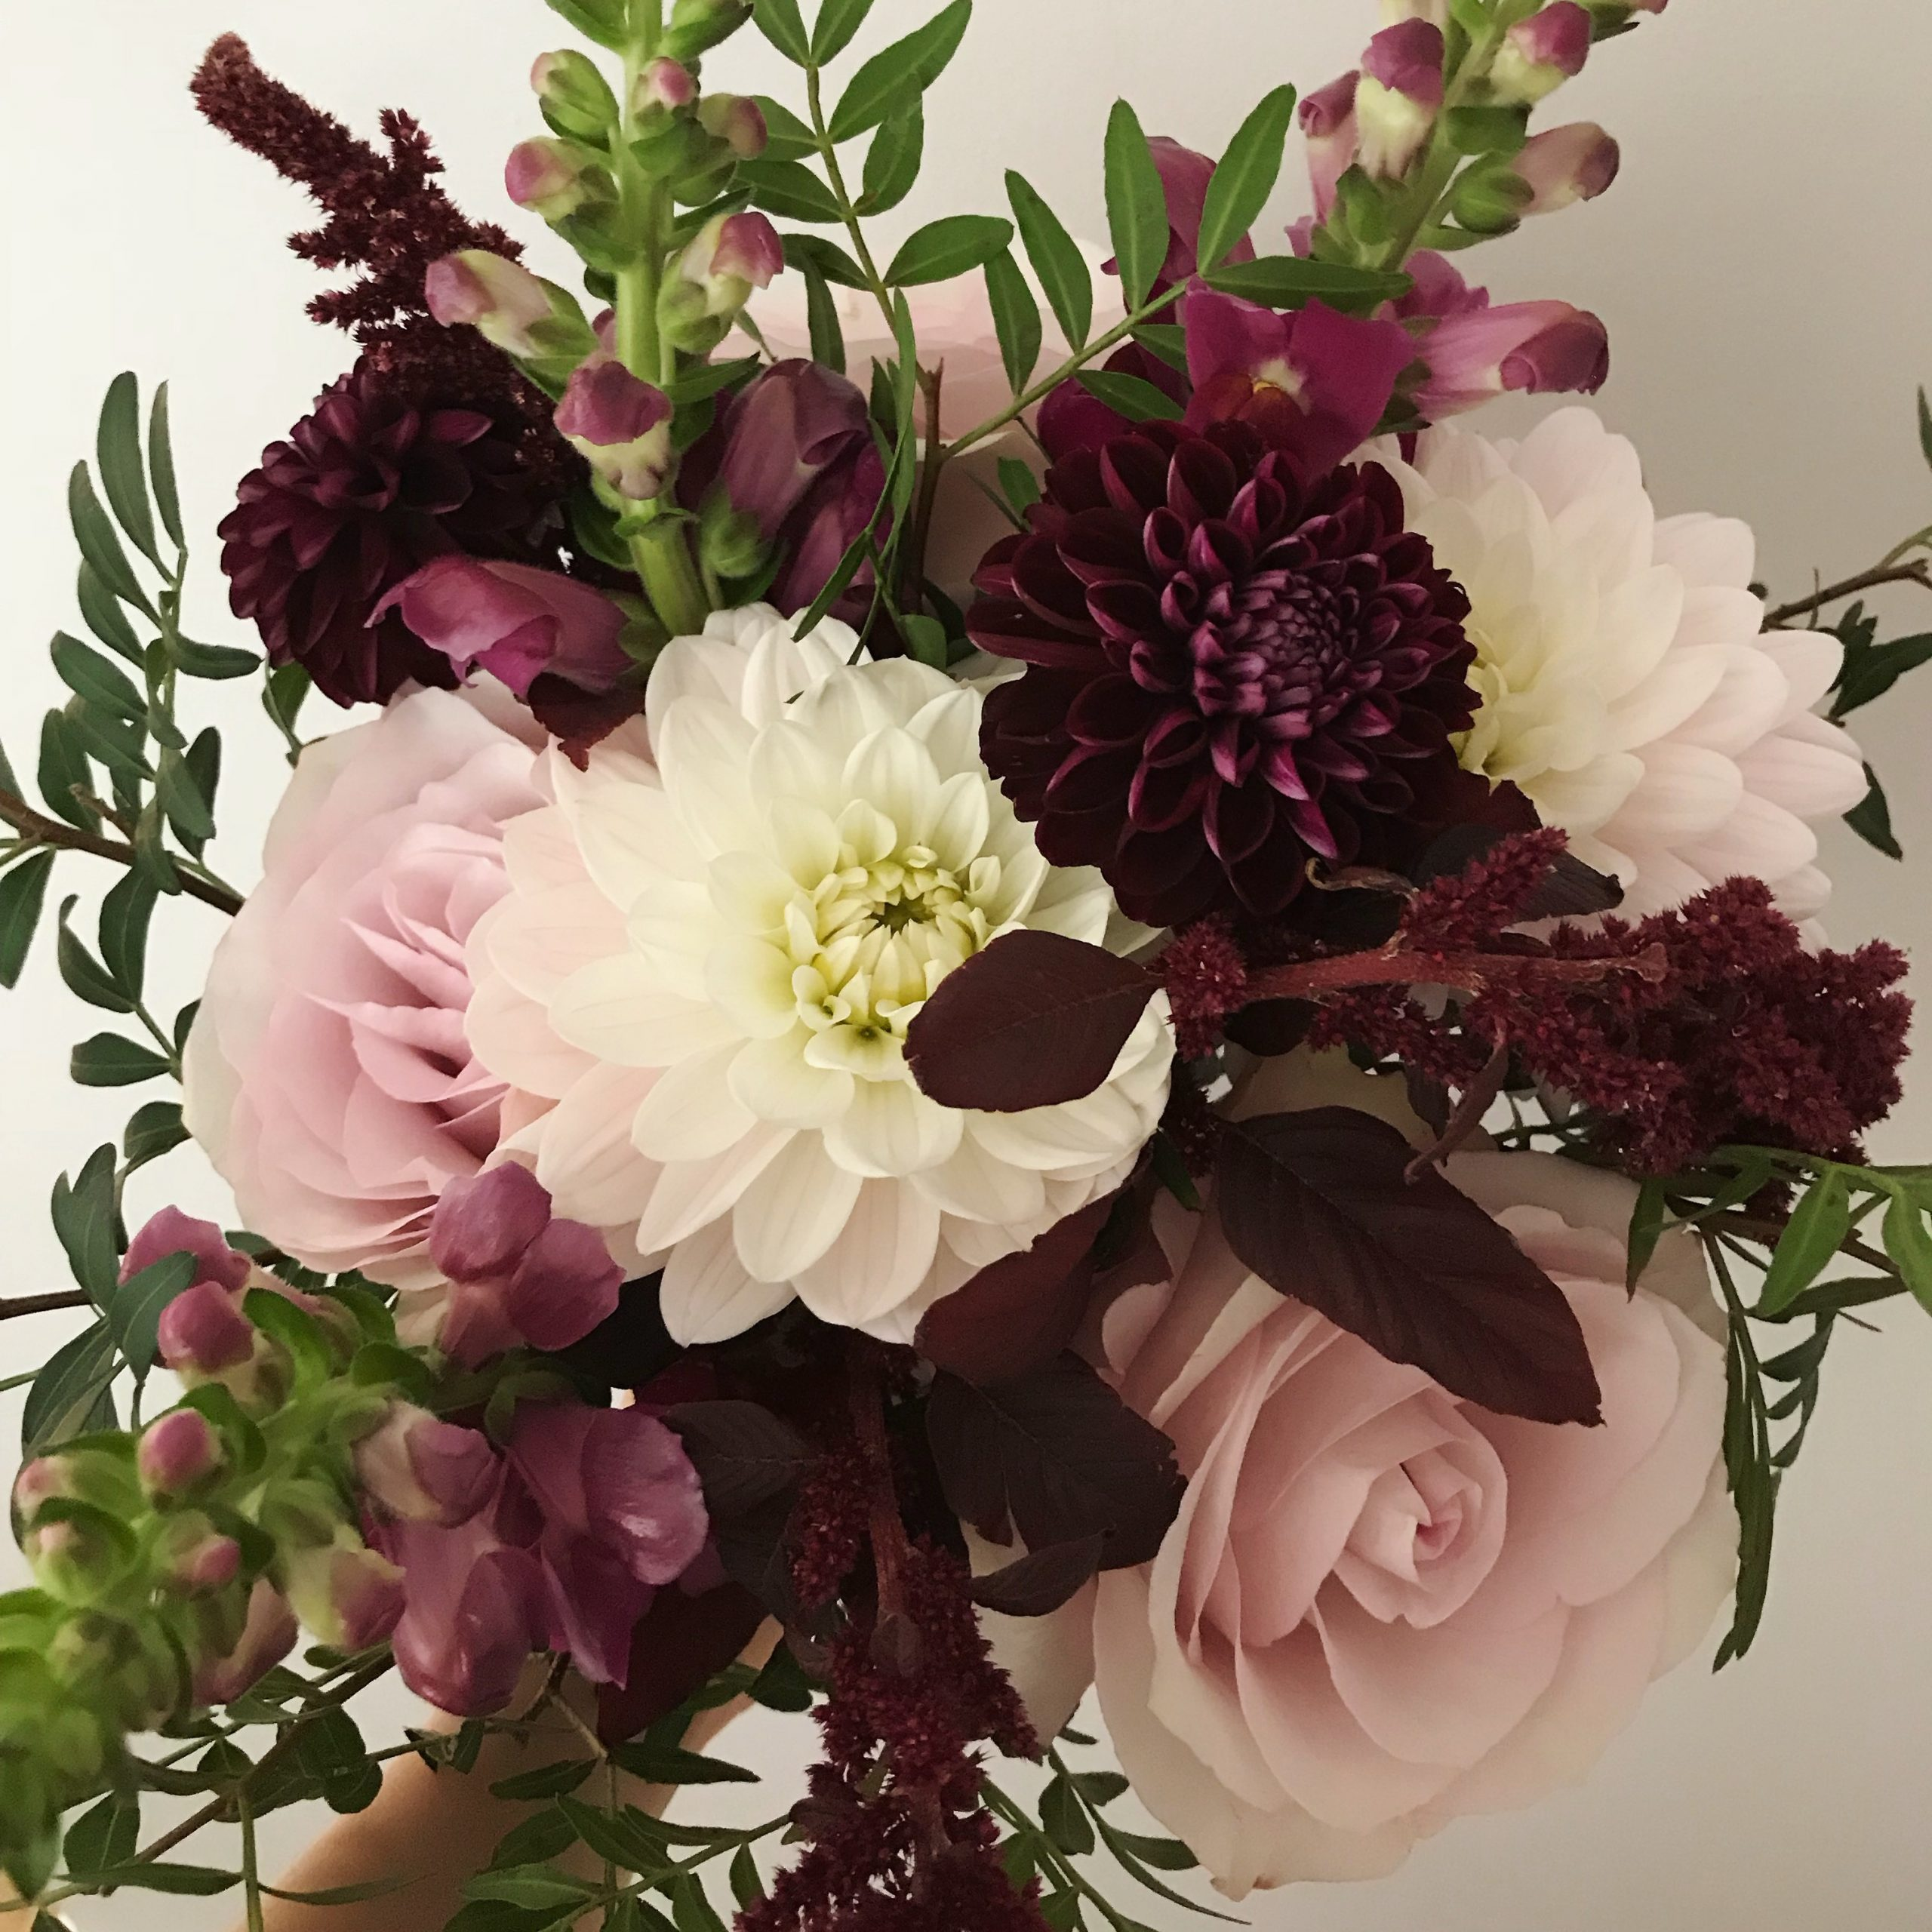 image of a floral bouquet made using roses, snap dragons and dahlias